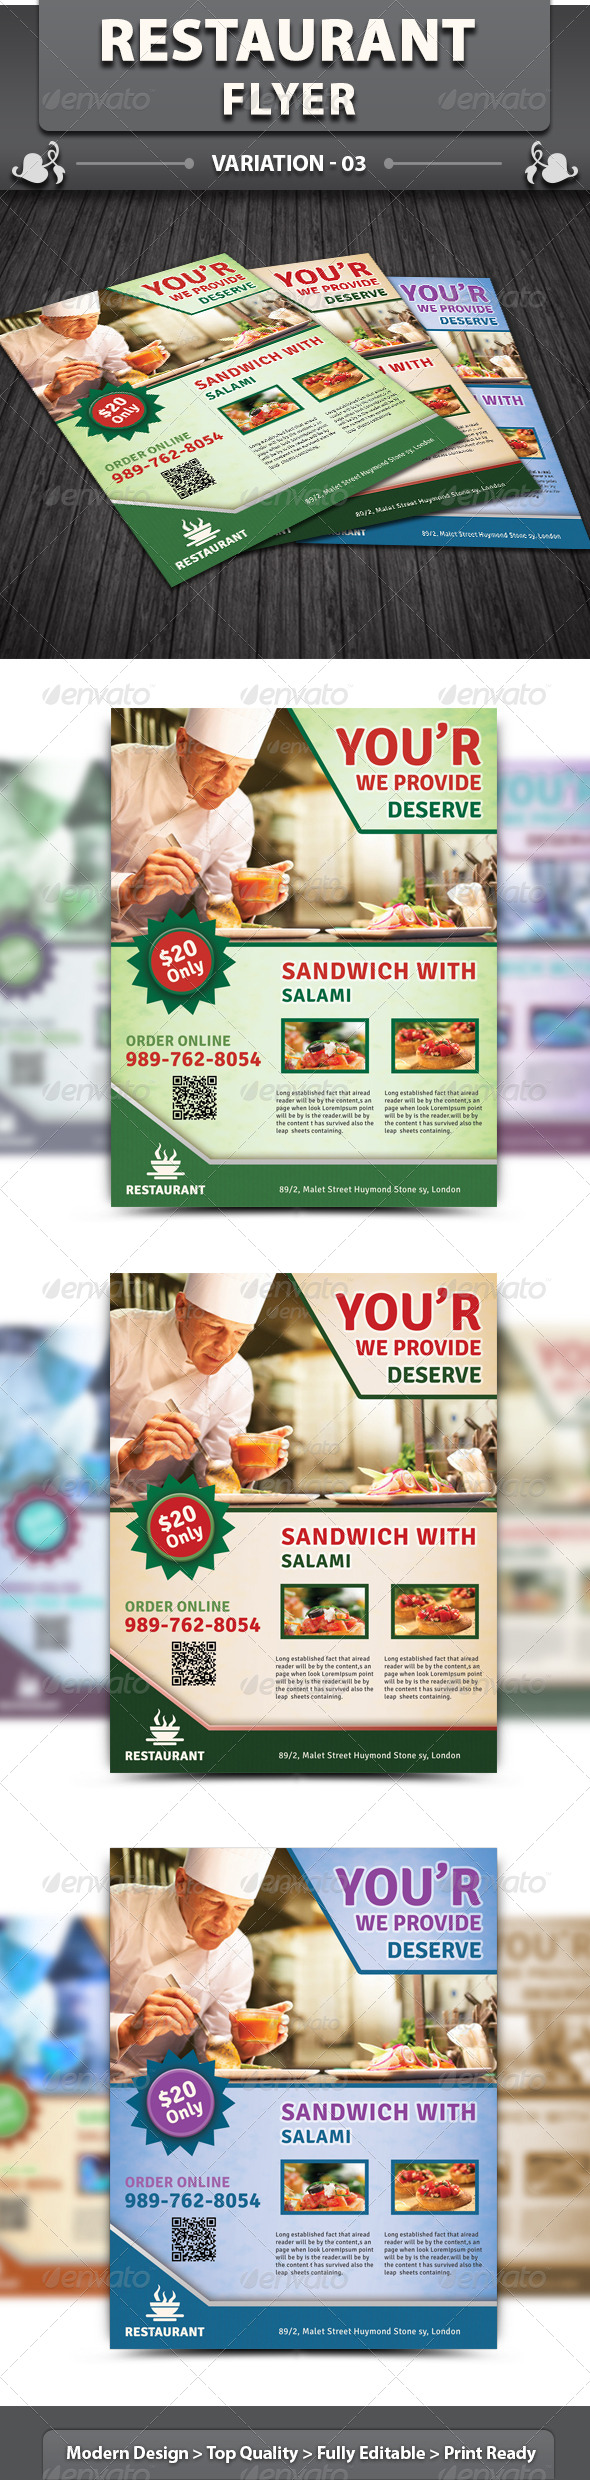 GraphicRiver Restaurant Flyer 5113725